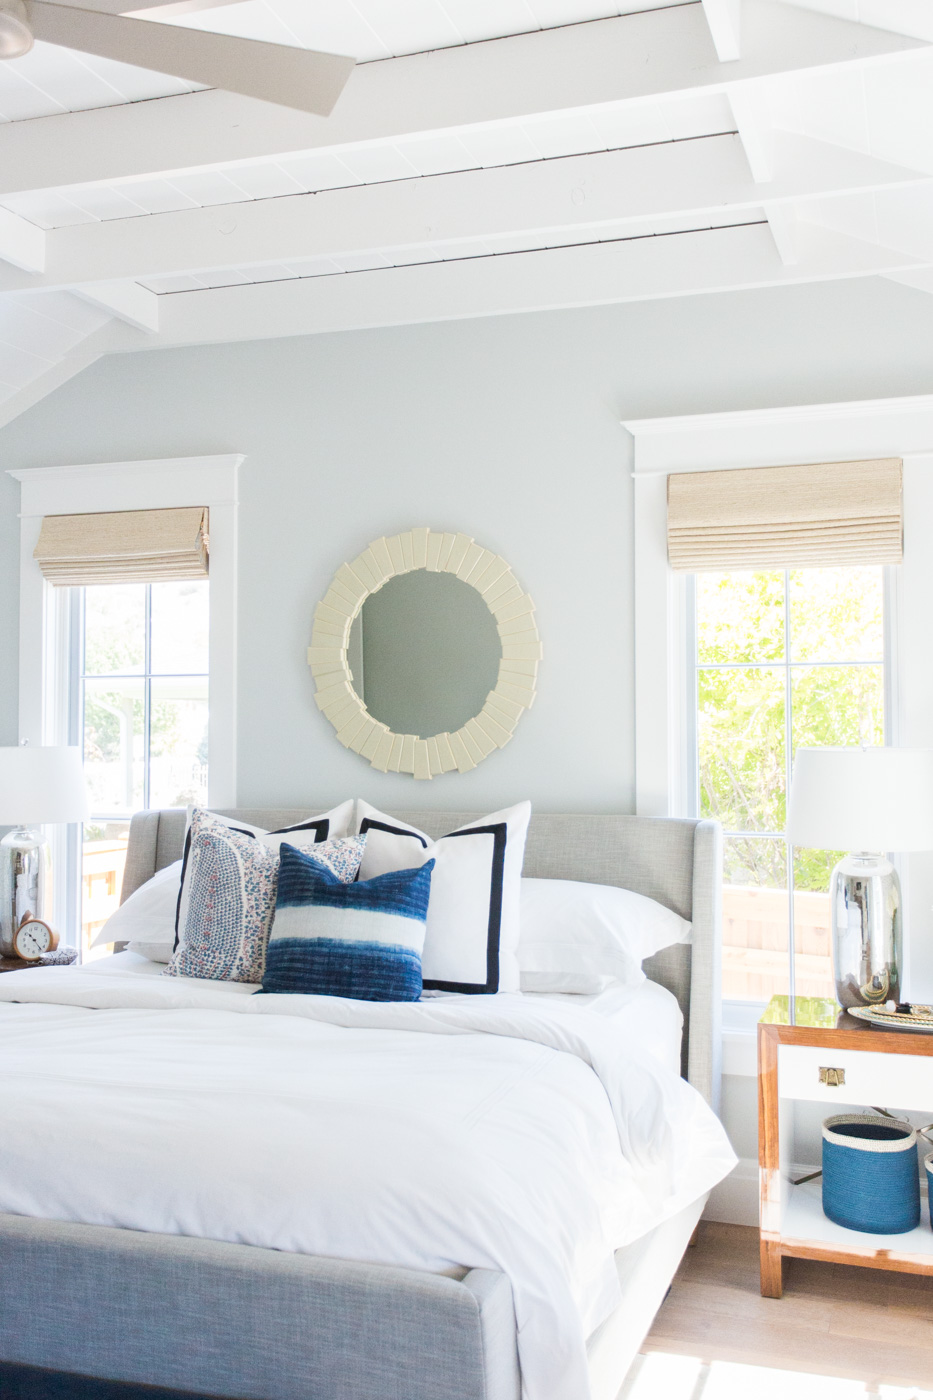 White bed beneath white ceiling in bedroom